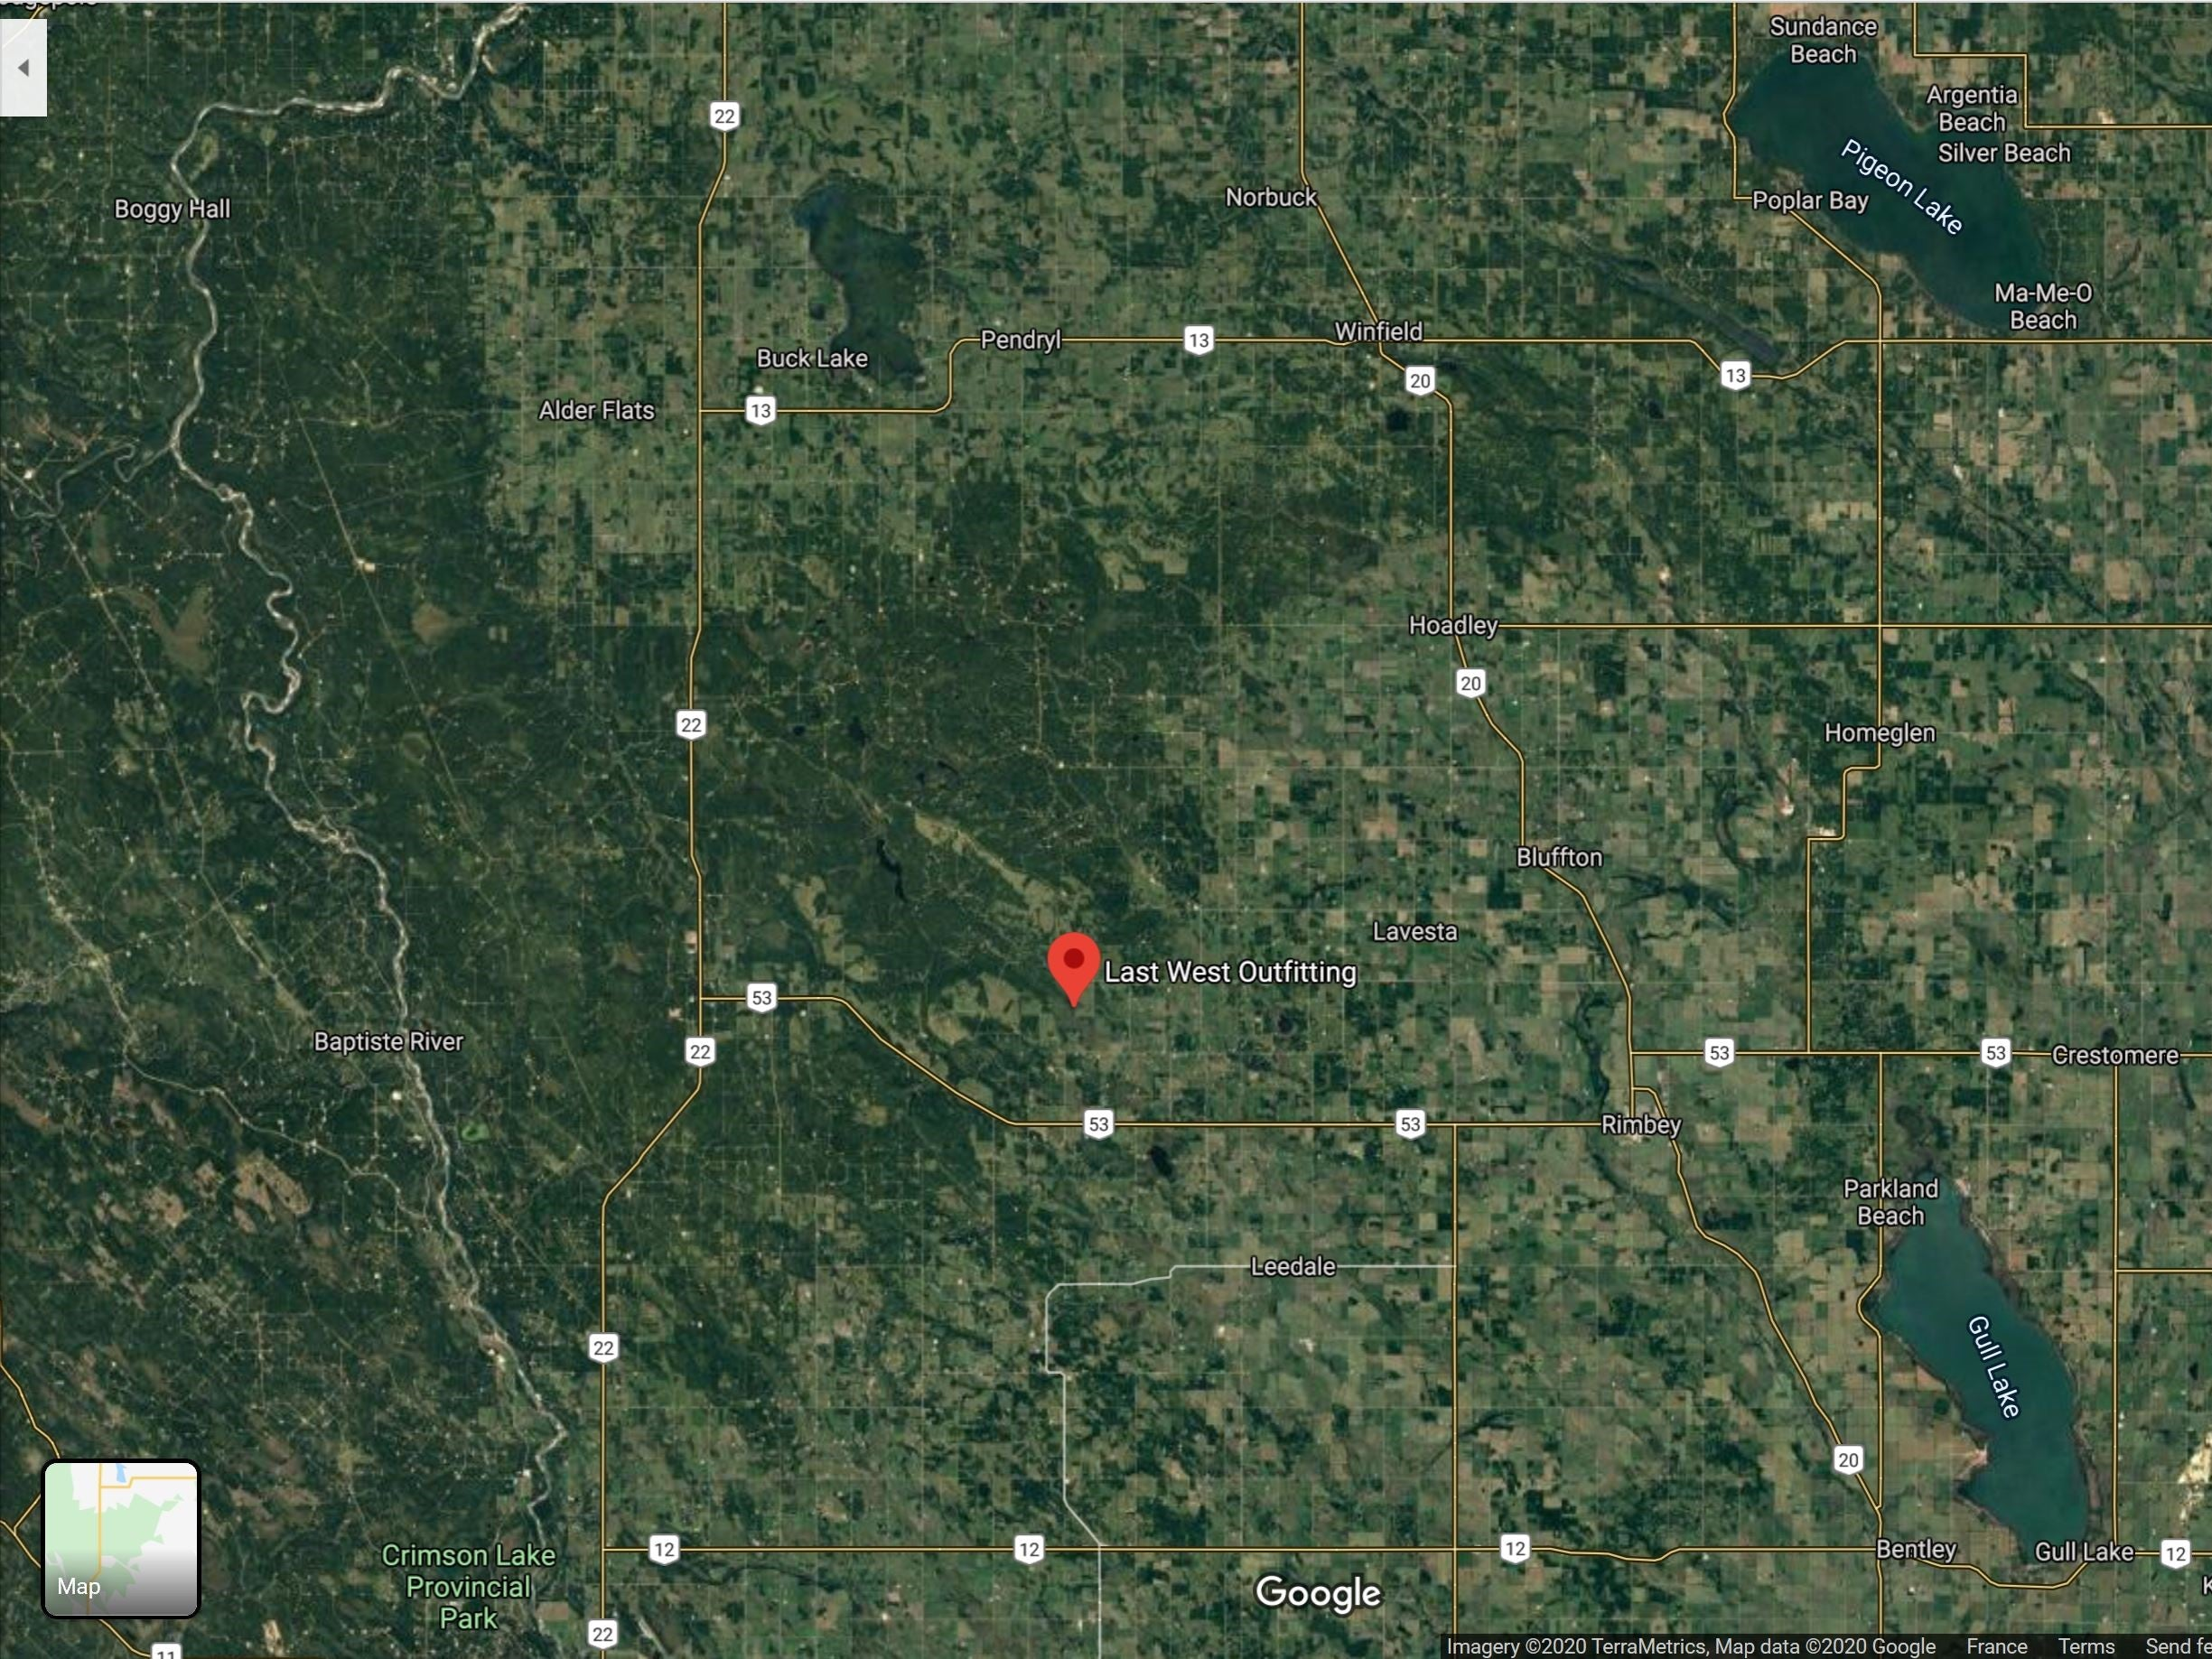 Last West Outfitters Satellite image